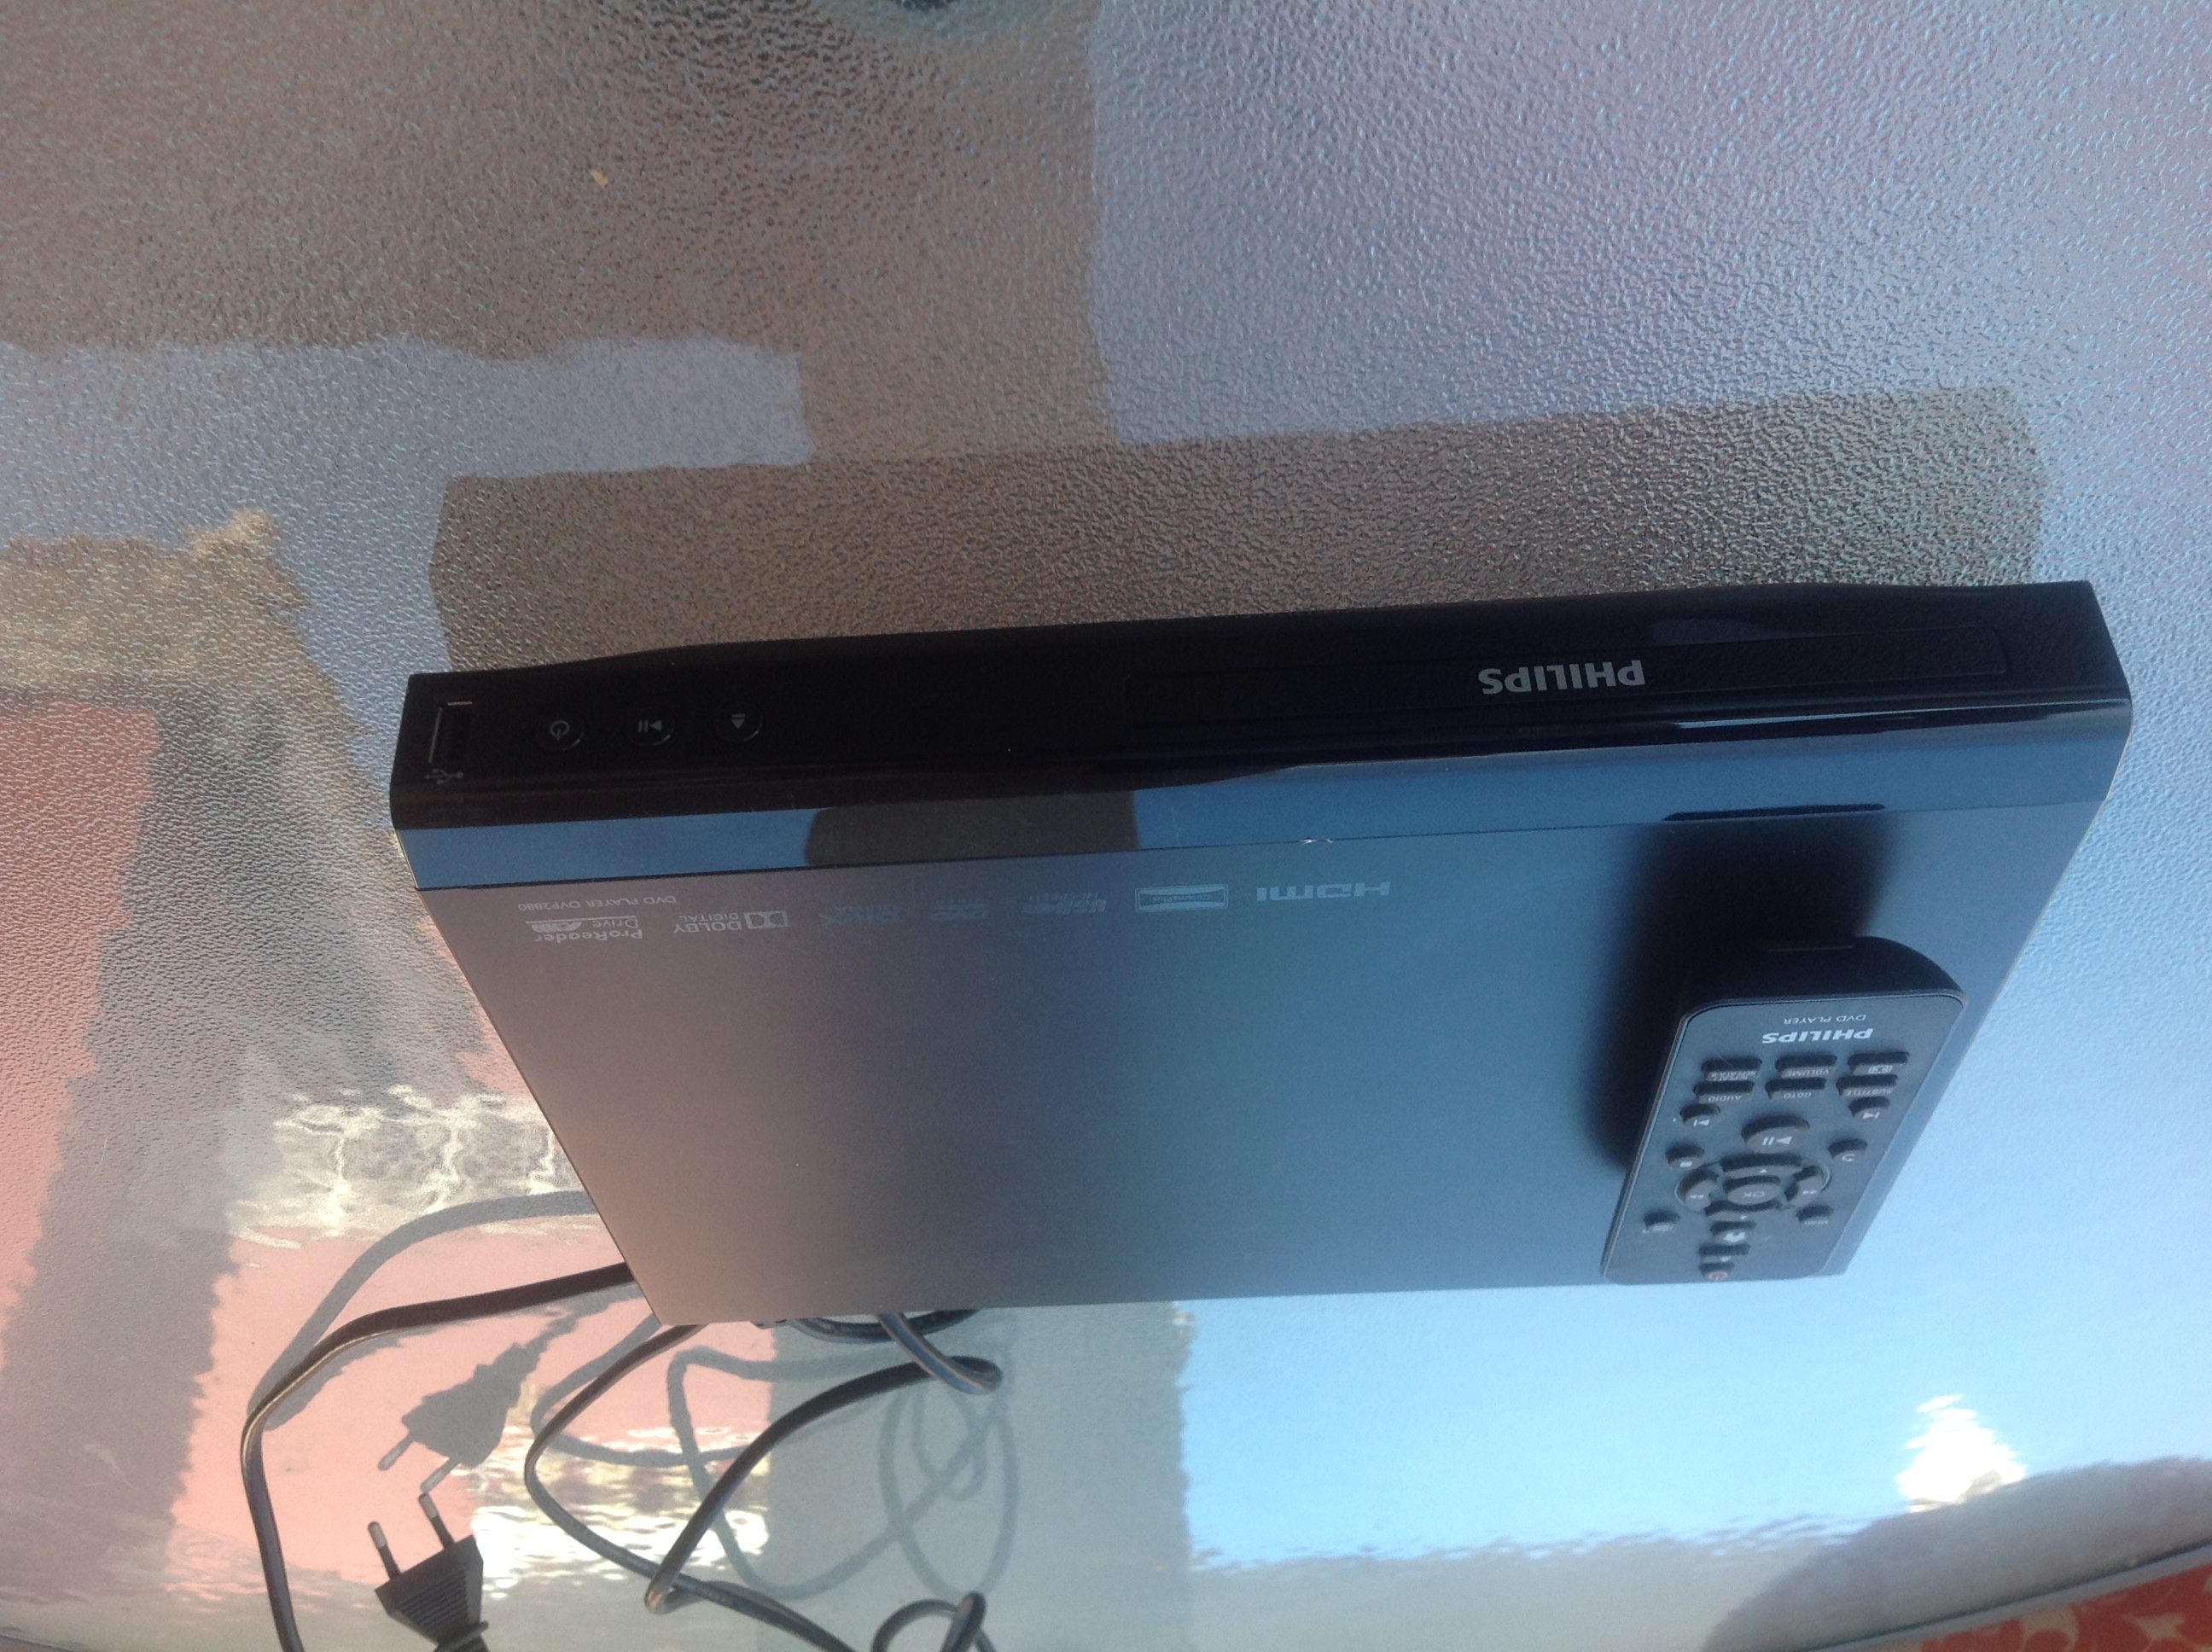 For sale: philips DVD player with USB cable and remote - Buy and ...